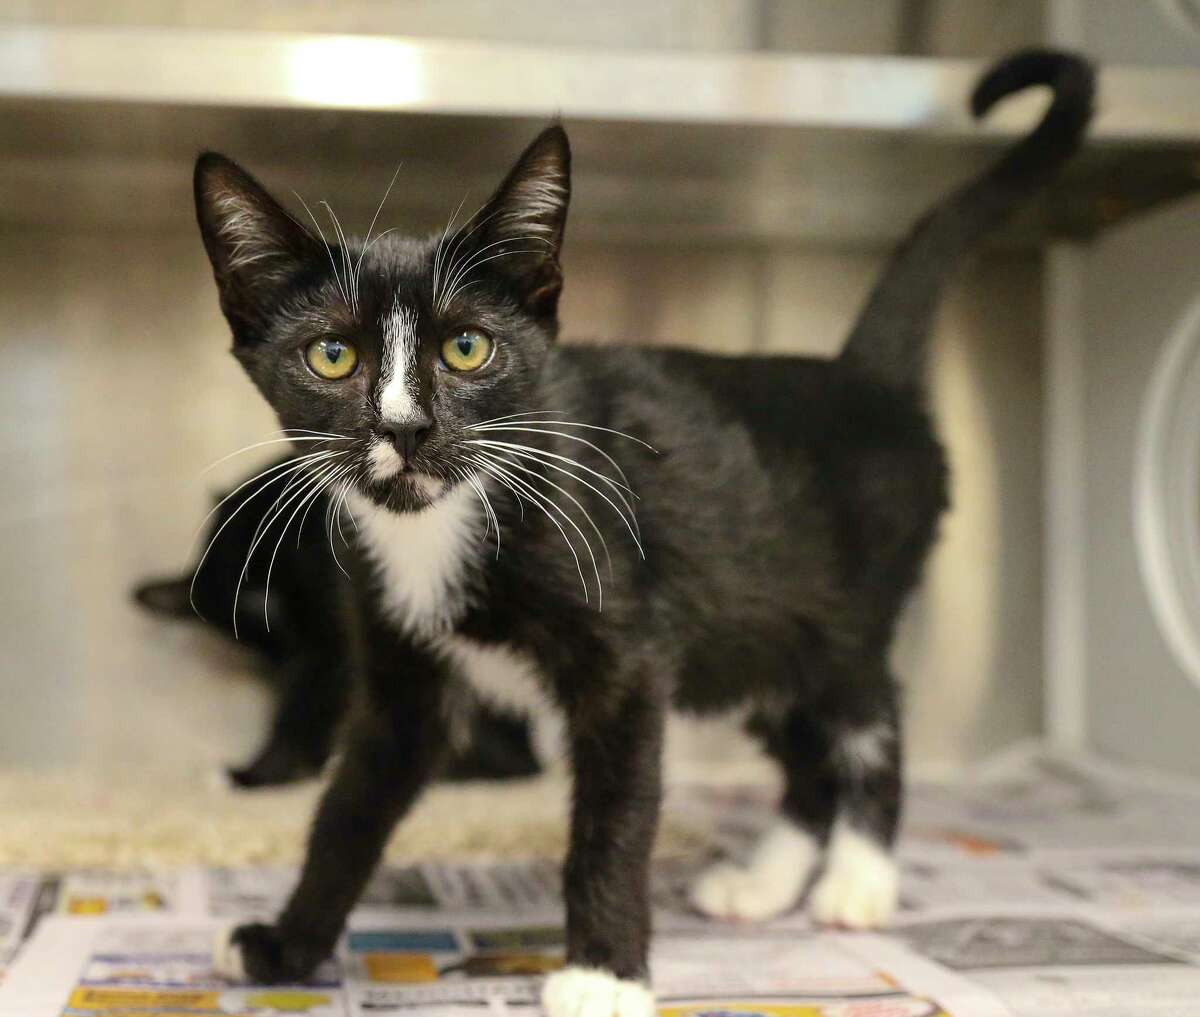 Laverne (A577401) and her sister Shirley (A577402) are 16-week-old, female, black/white Tuxedo kittens available for adoption at Harris County Pets. Laverne and Shirley along with their brothers, Lenny and Squiggy, were found abandoned at a local animal hospital, and brought into the shelter on June 29th.